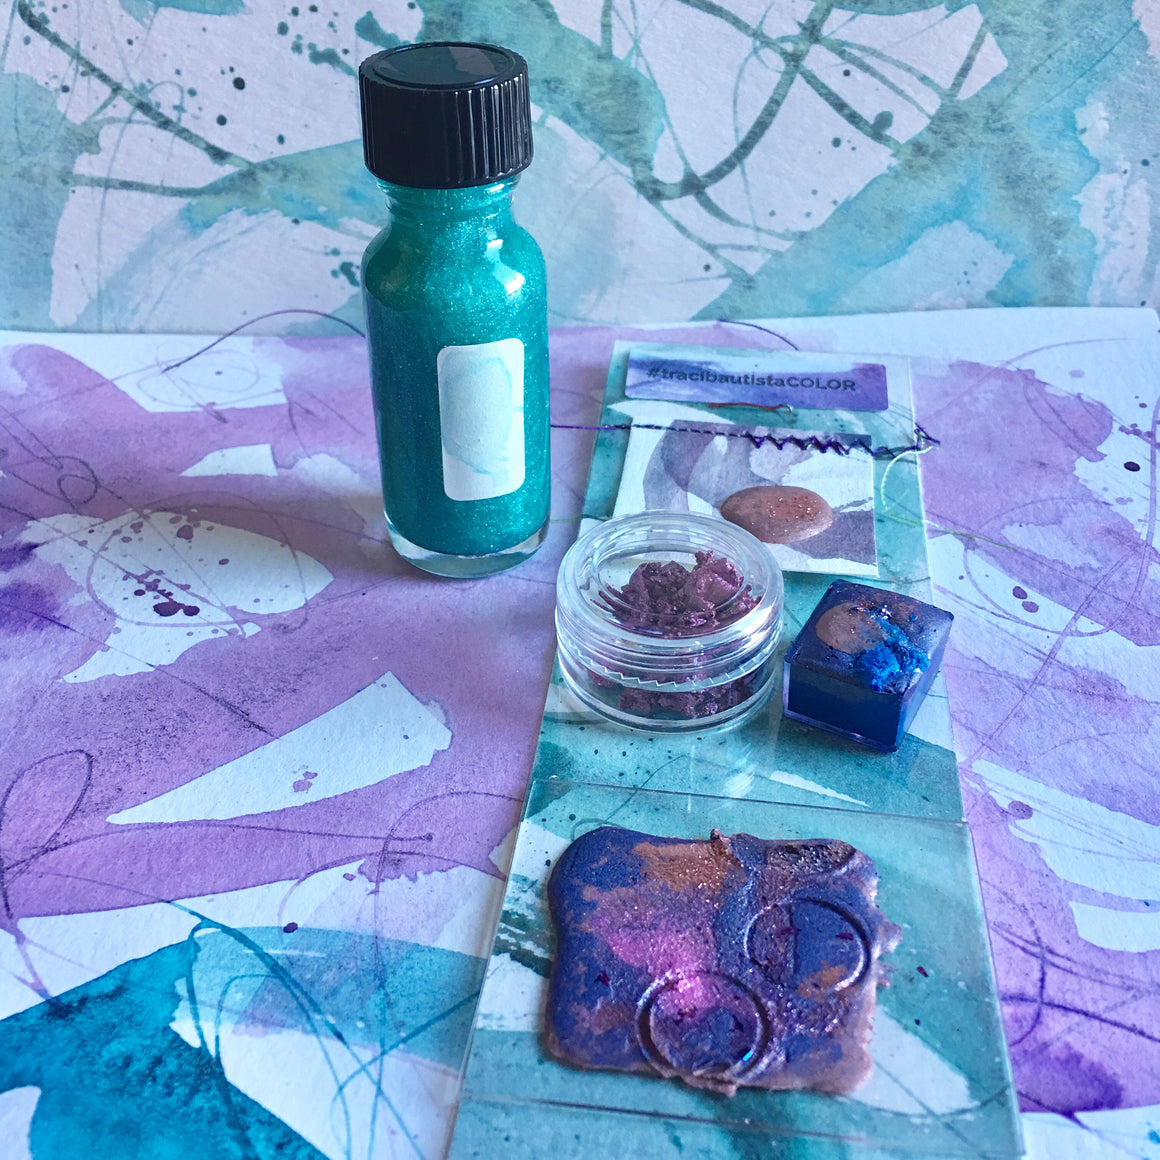 #tracibautistaCOLOR ~ WHISPERS OF WINTER artisanal watercolor collection